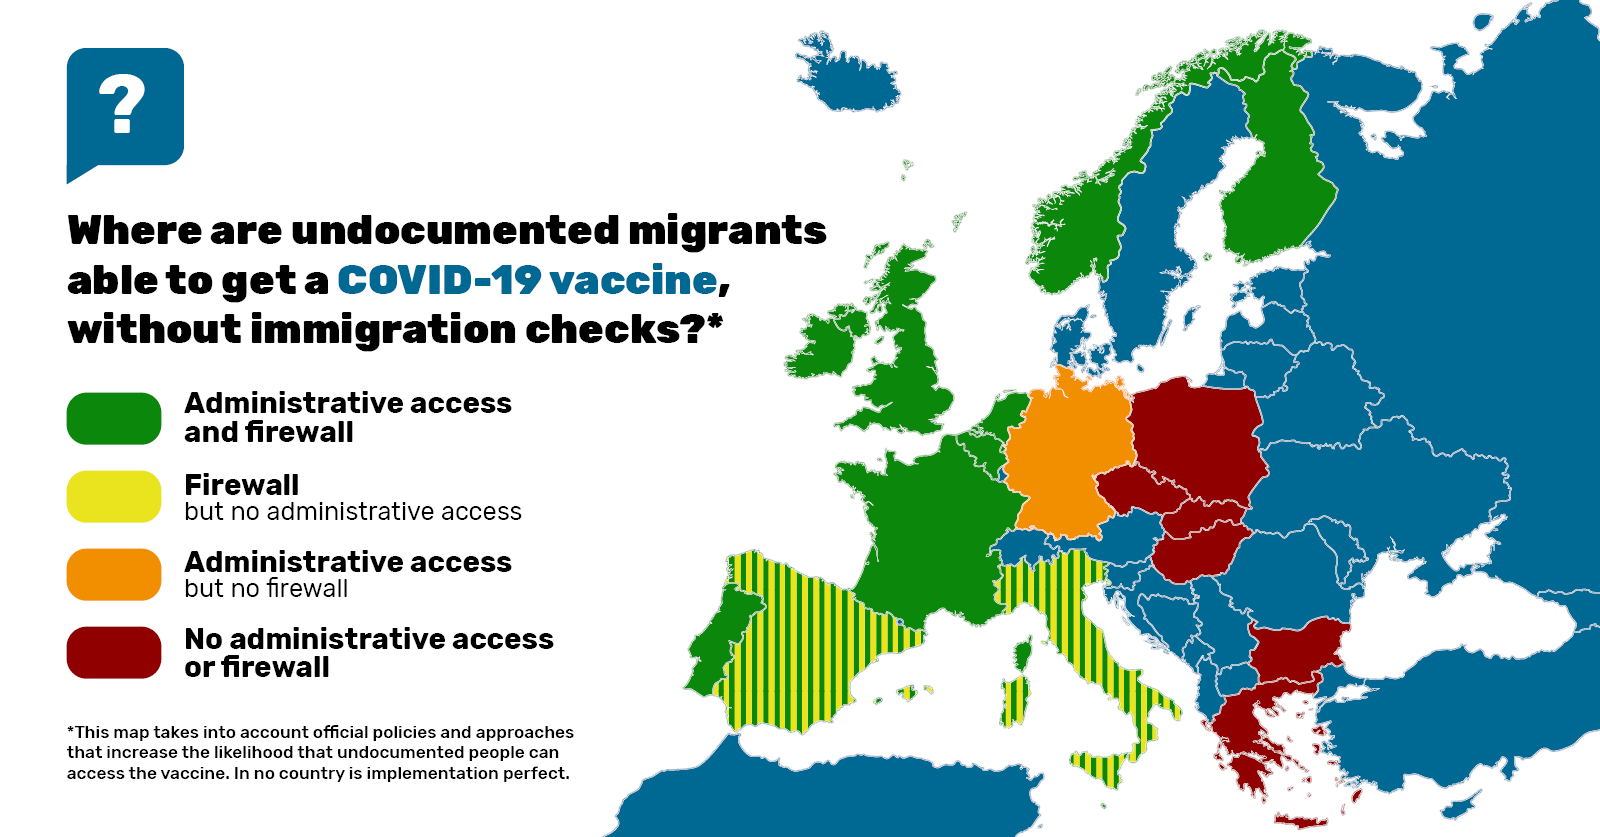 European map showing where undocumented migrants can access the covid-19 vaccine